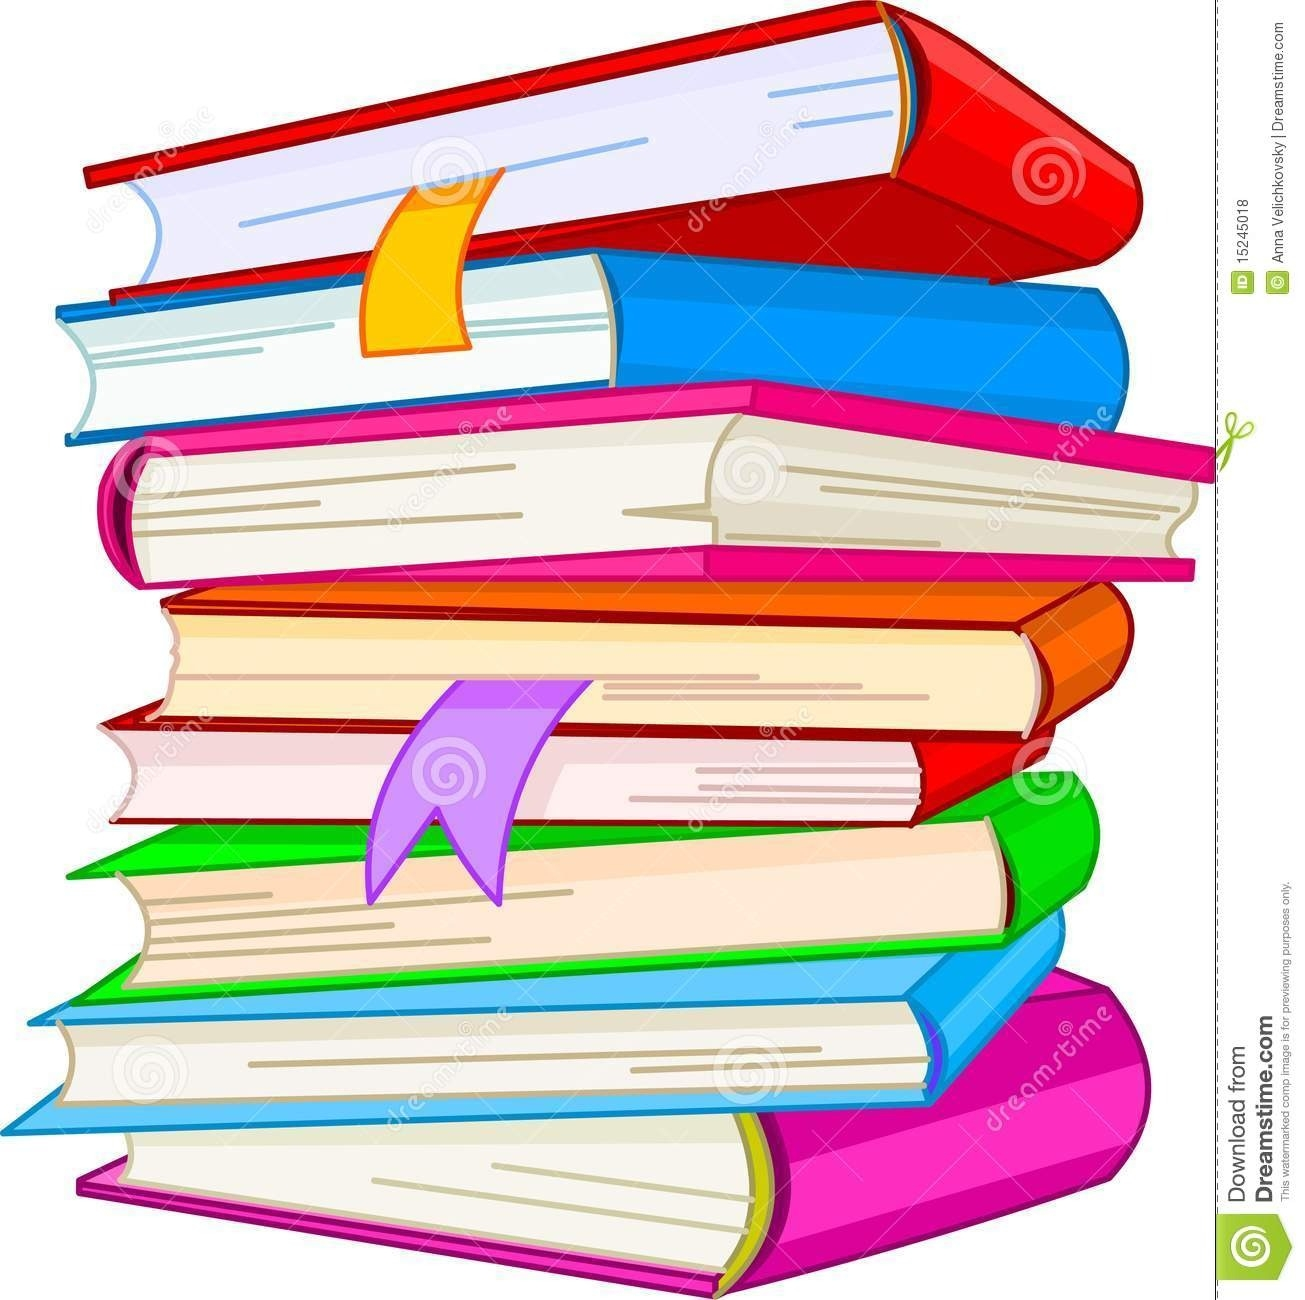 Books clip art pile book free images with tall stack jpg.